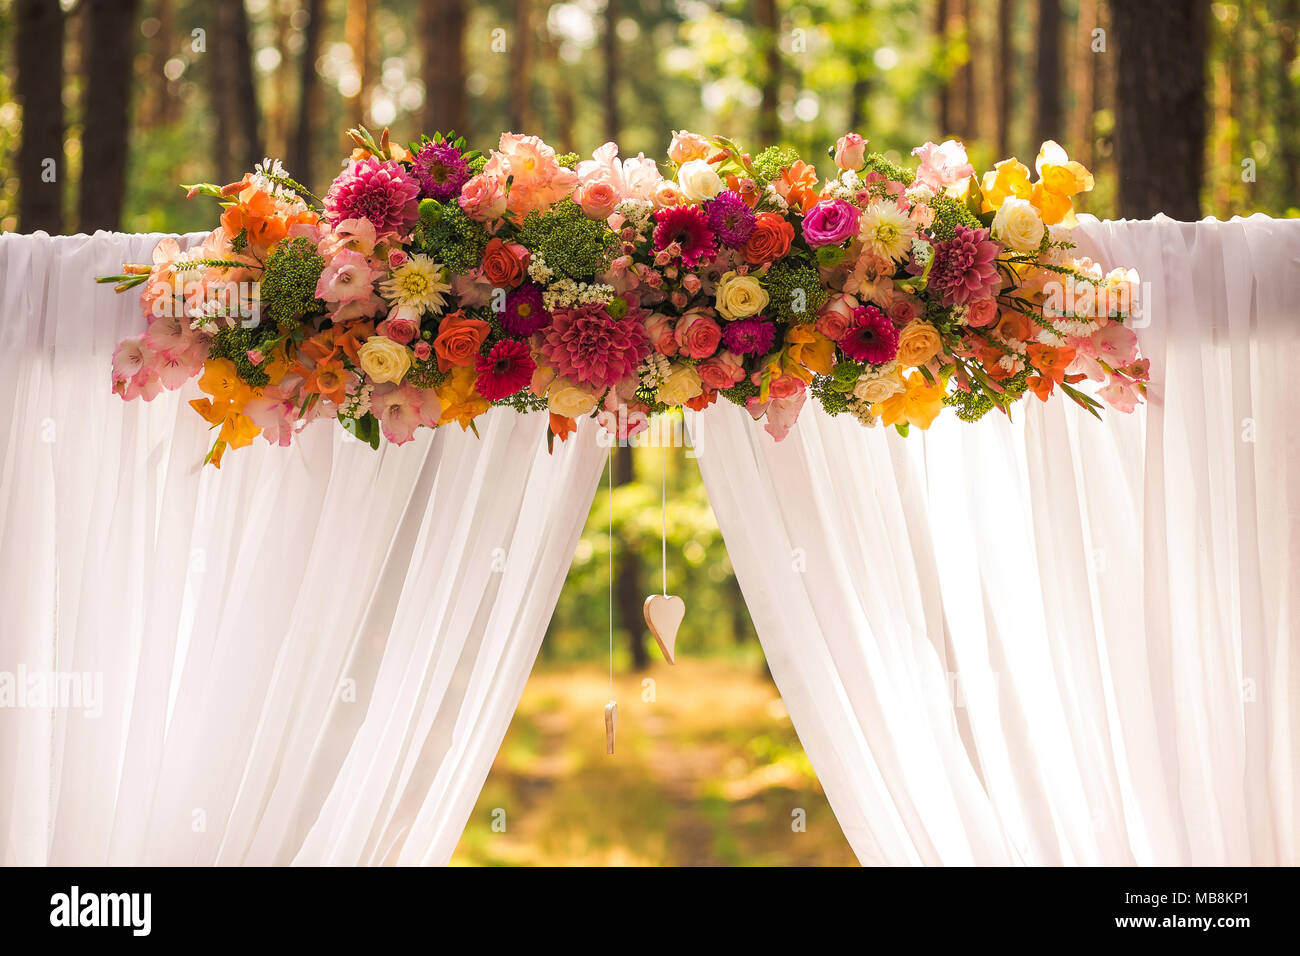 Floral wedding decorations for beautiful romantic wedding ceremony floral wedding decorations for beautiful romantic wedding ceremony outside at sunny forest horizontal color photography junglespirit Gallery